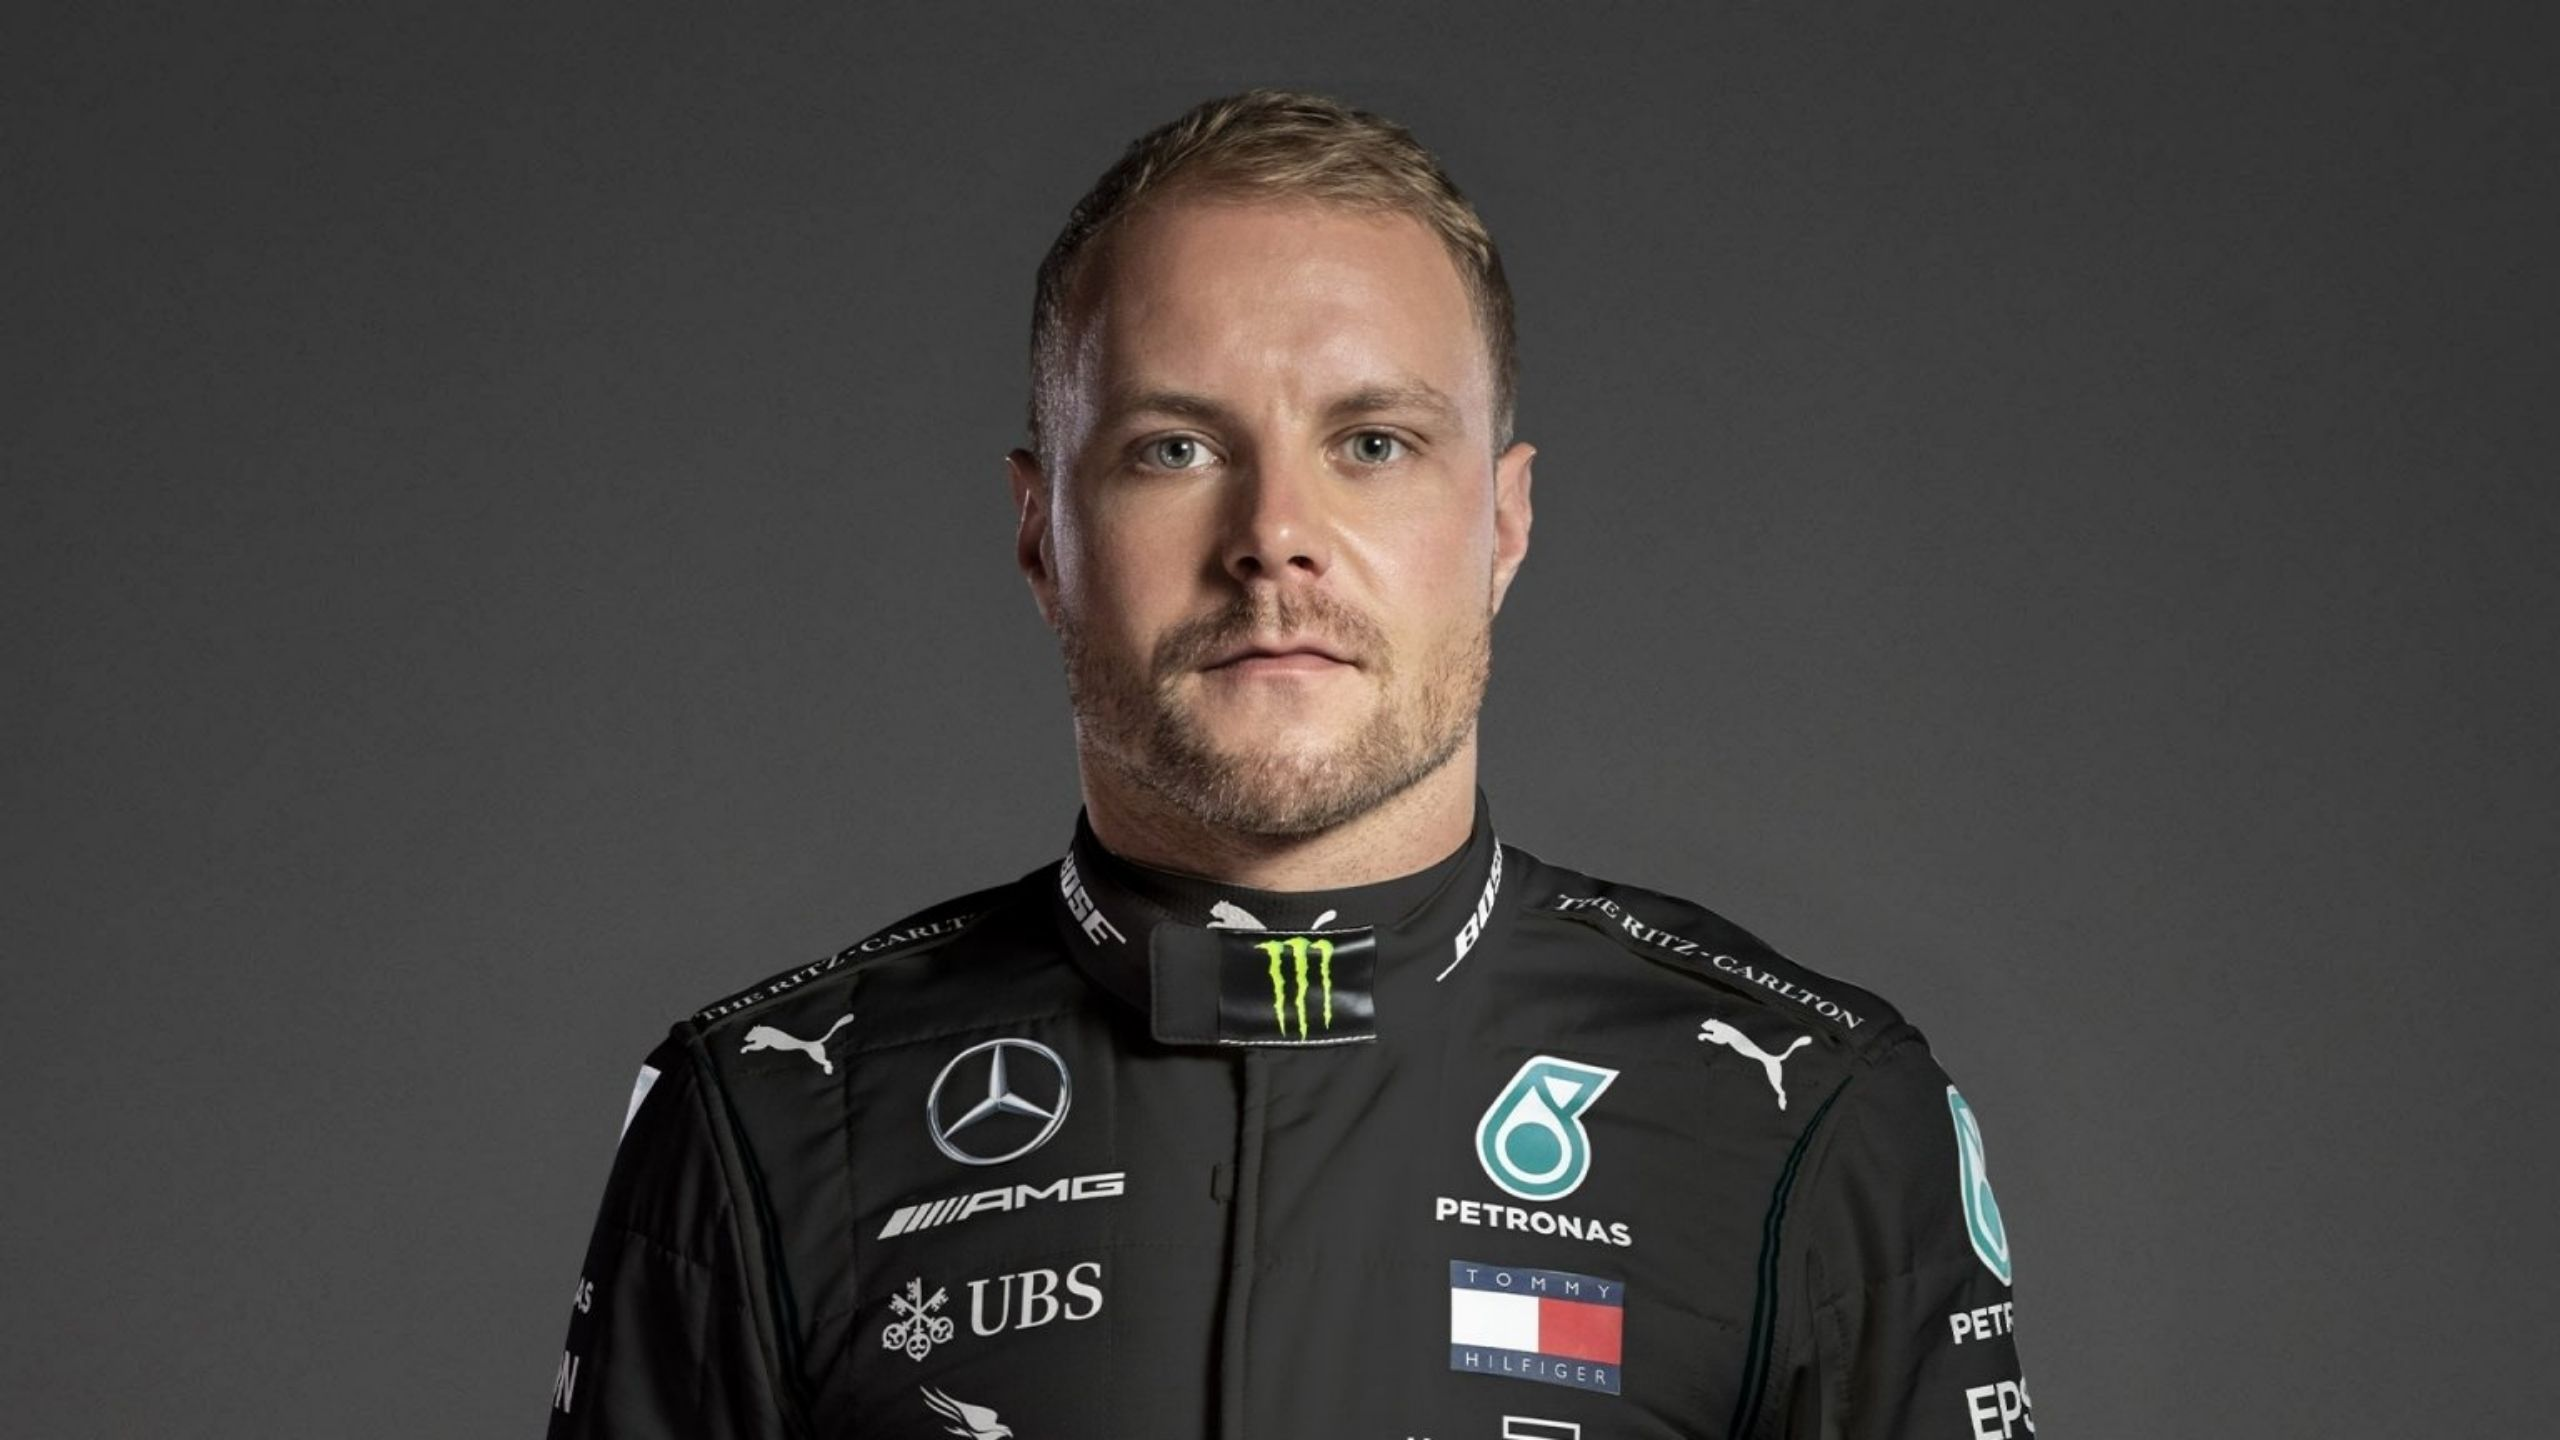 """""""It was a disaster race for me"""" - Valtteri Bottas on spinning six times at Turkish Grand Prix"""